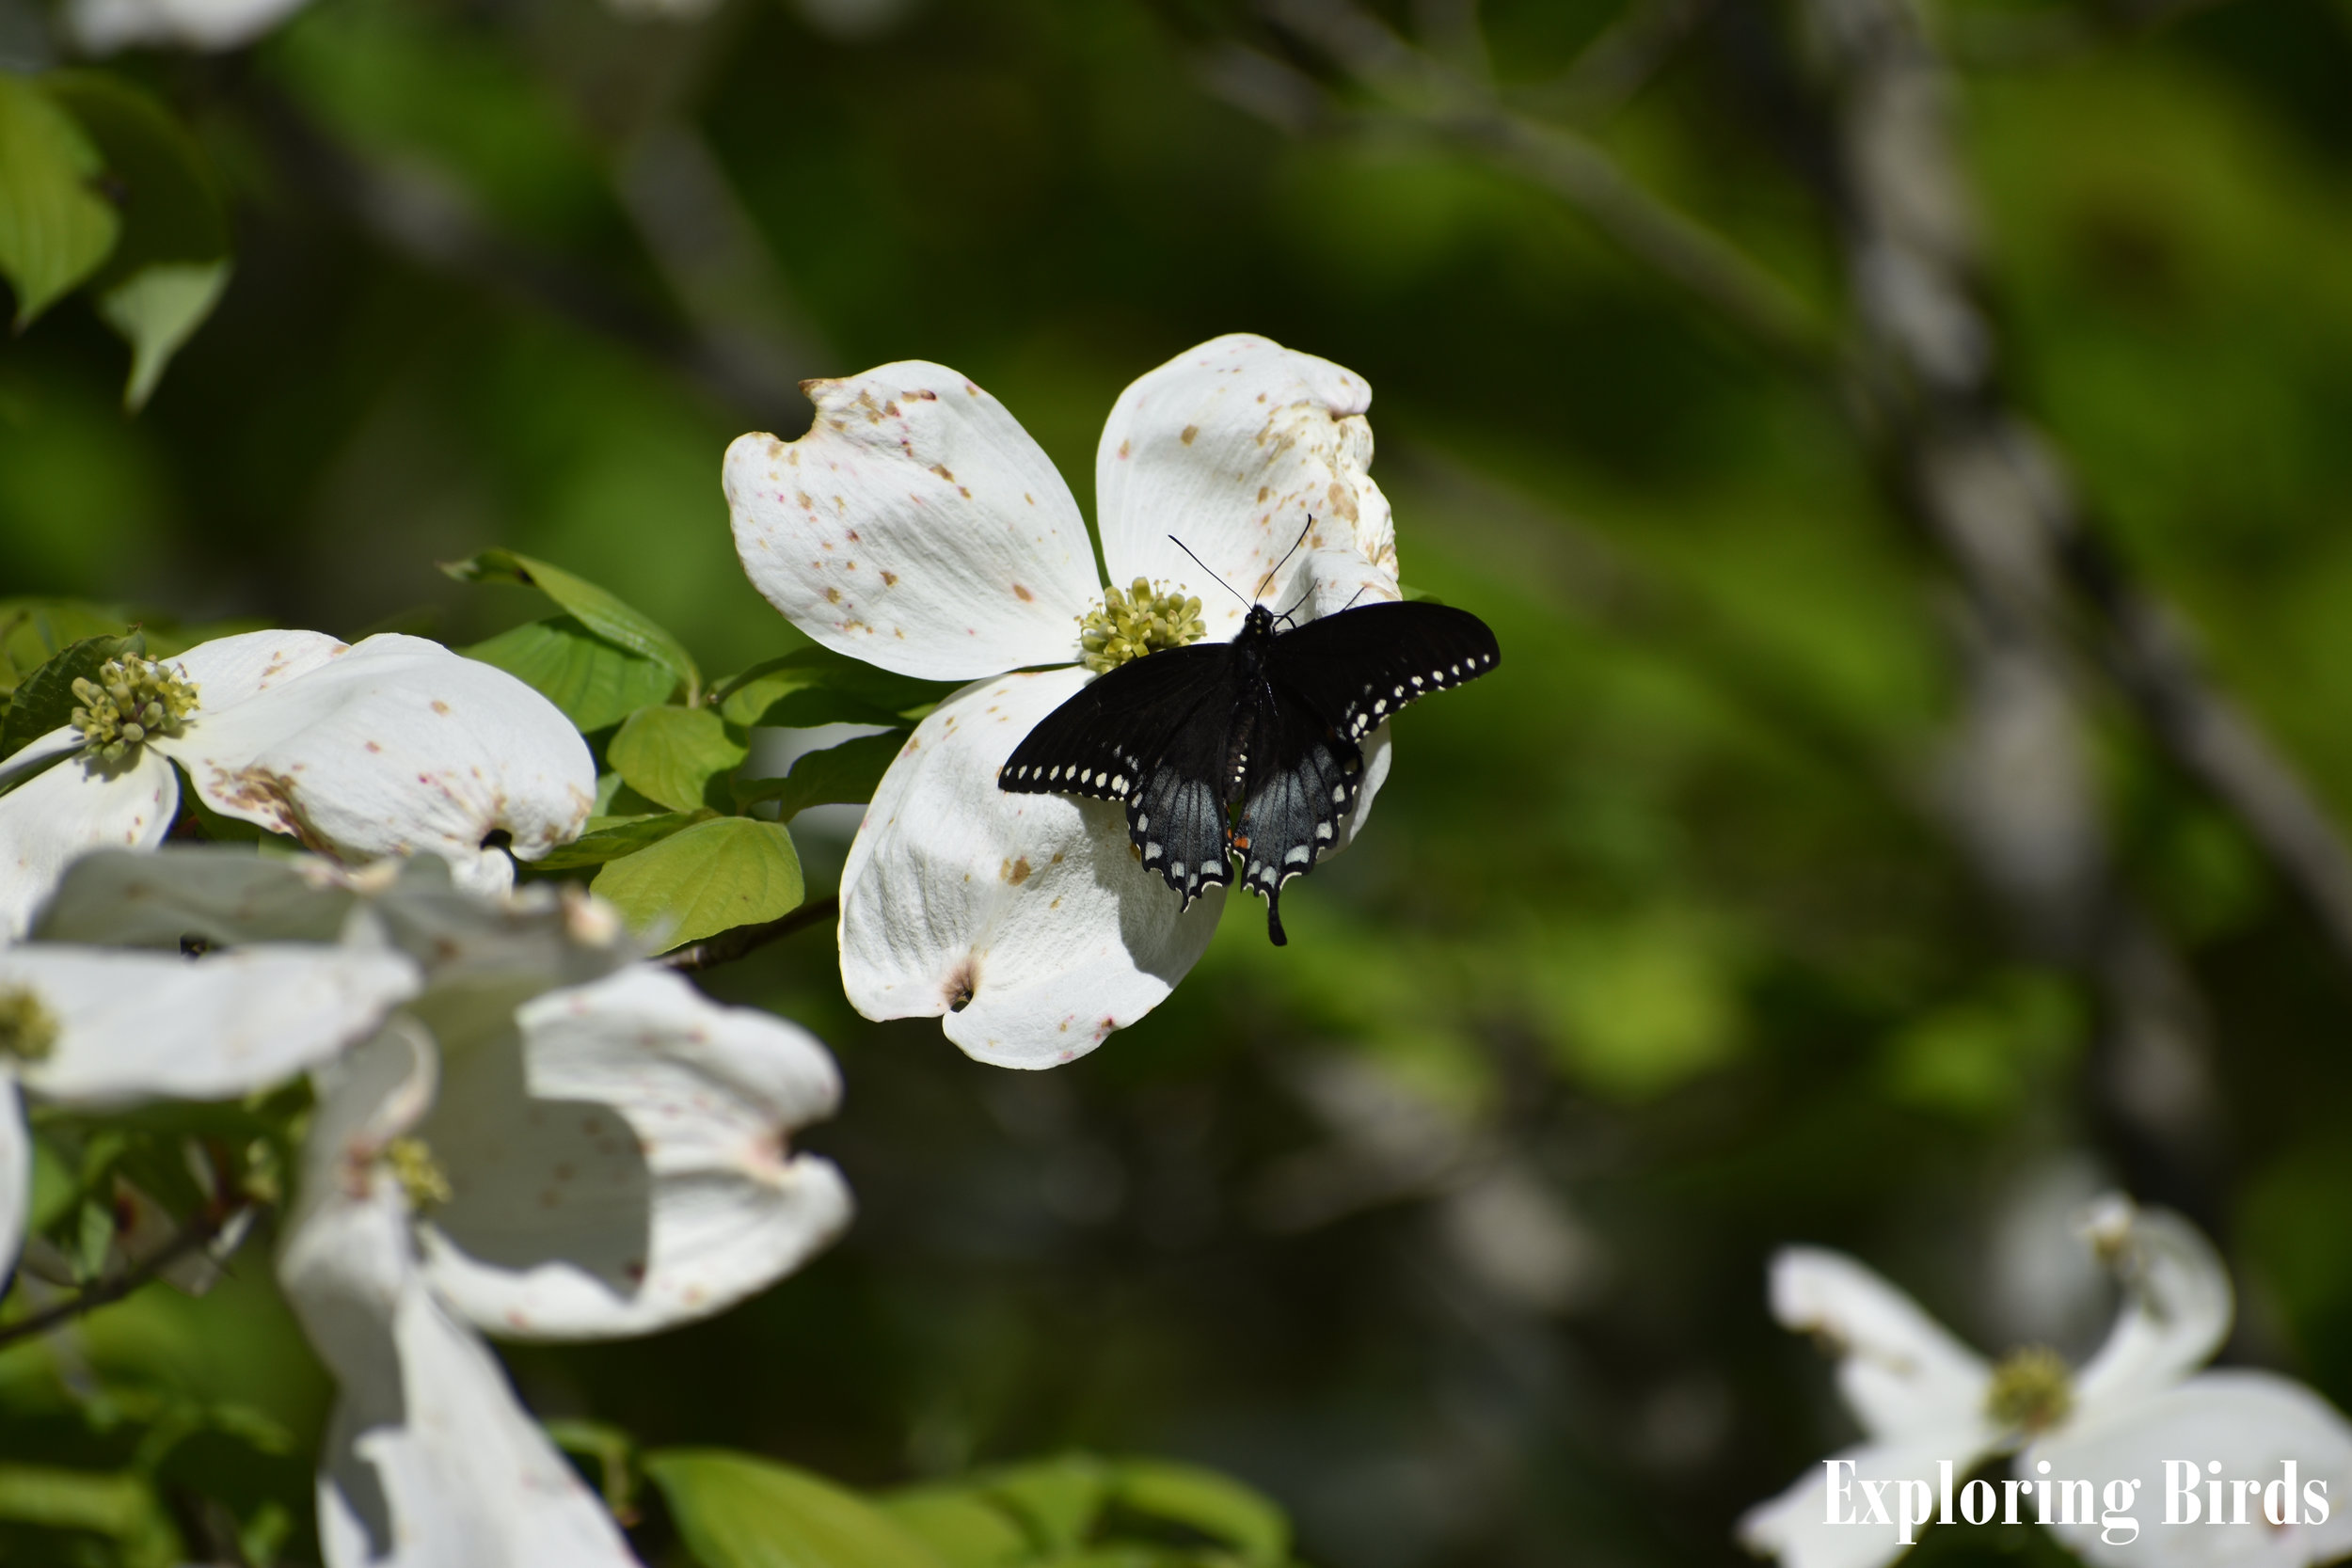 Flowering Dogwood attracts butterflies